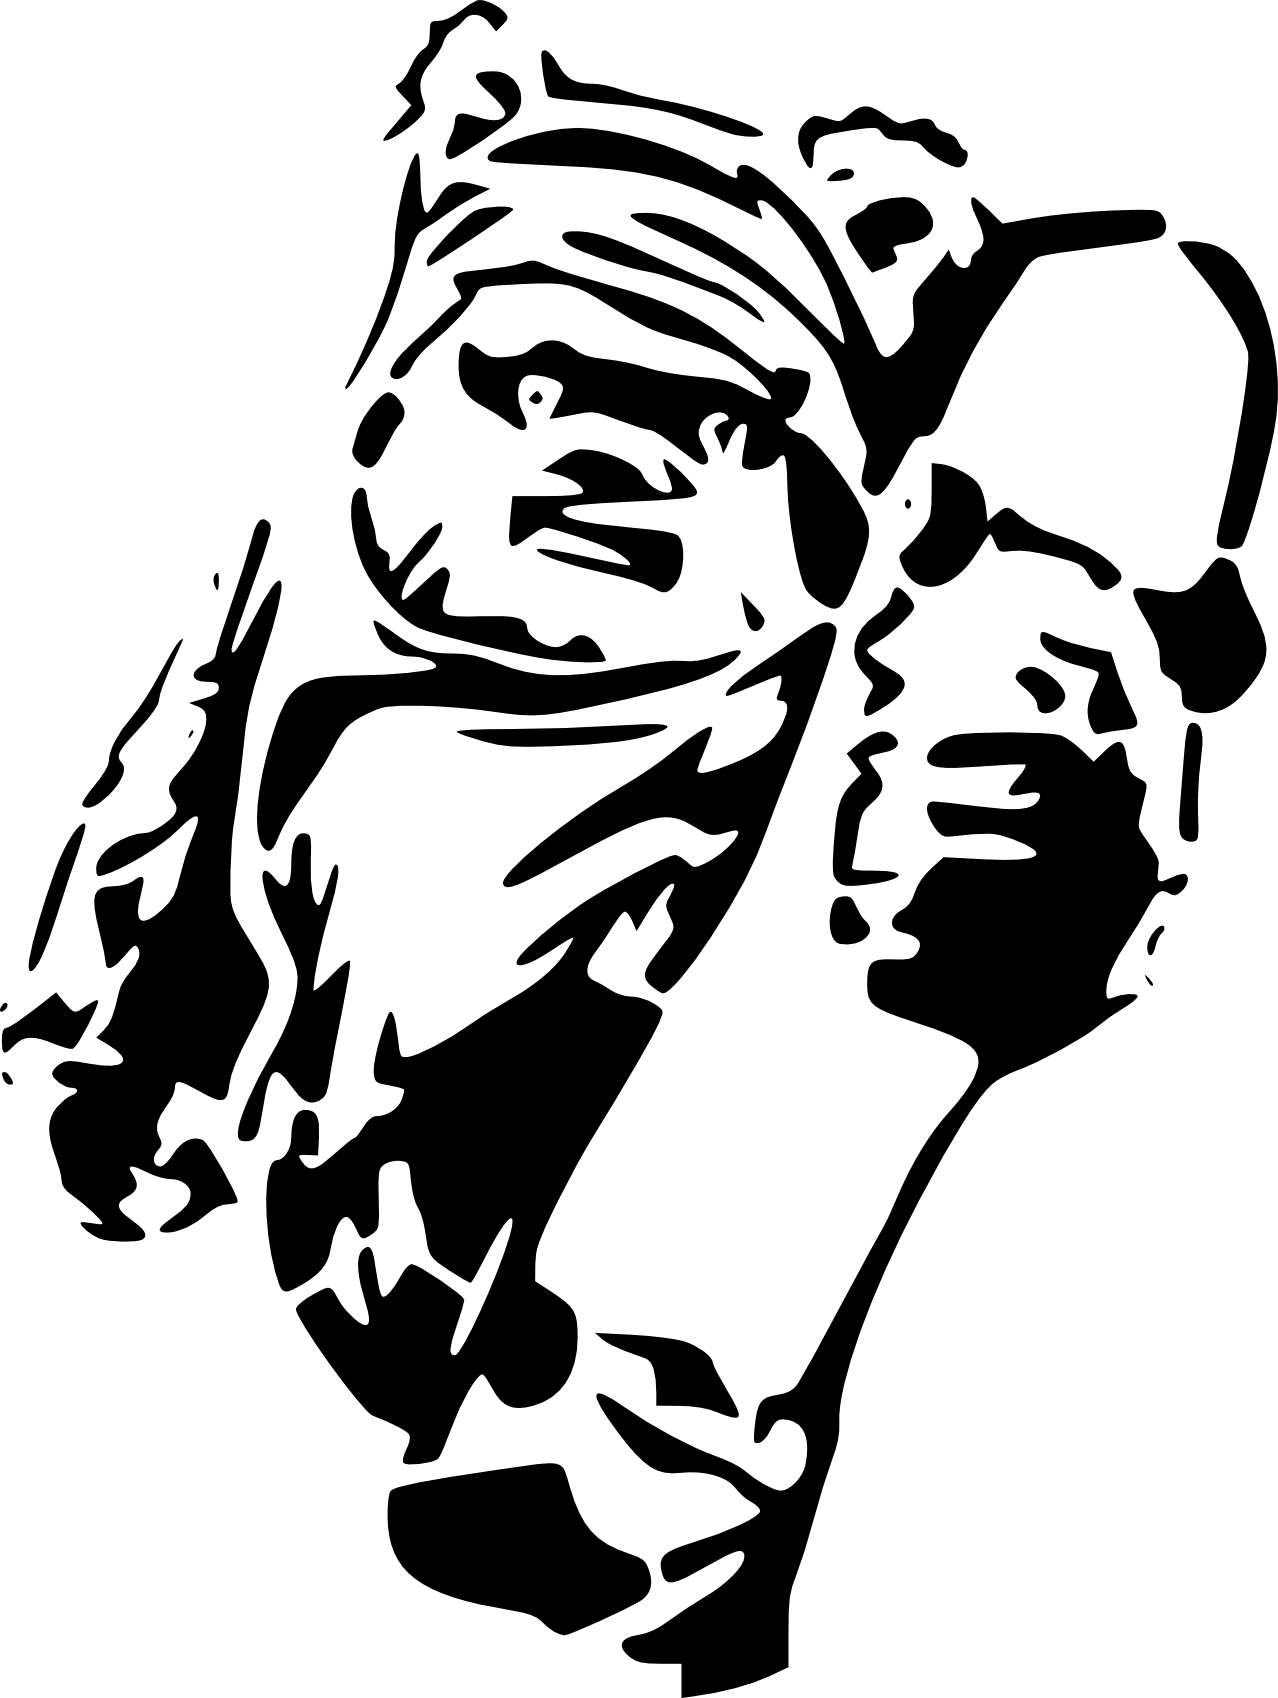 Star Wars Stencils - Yahoo Image Search Results | star wars ...